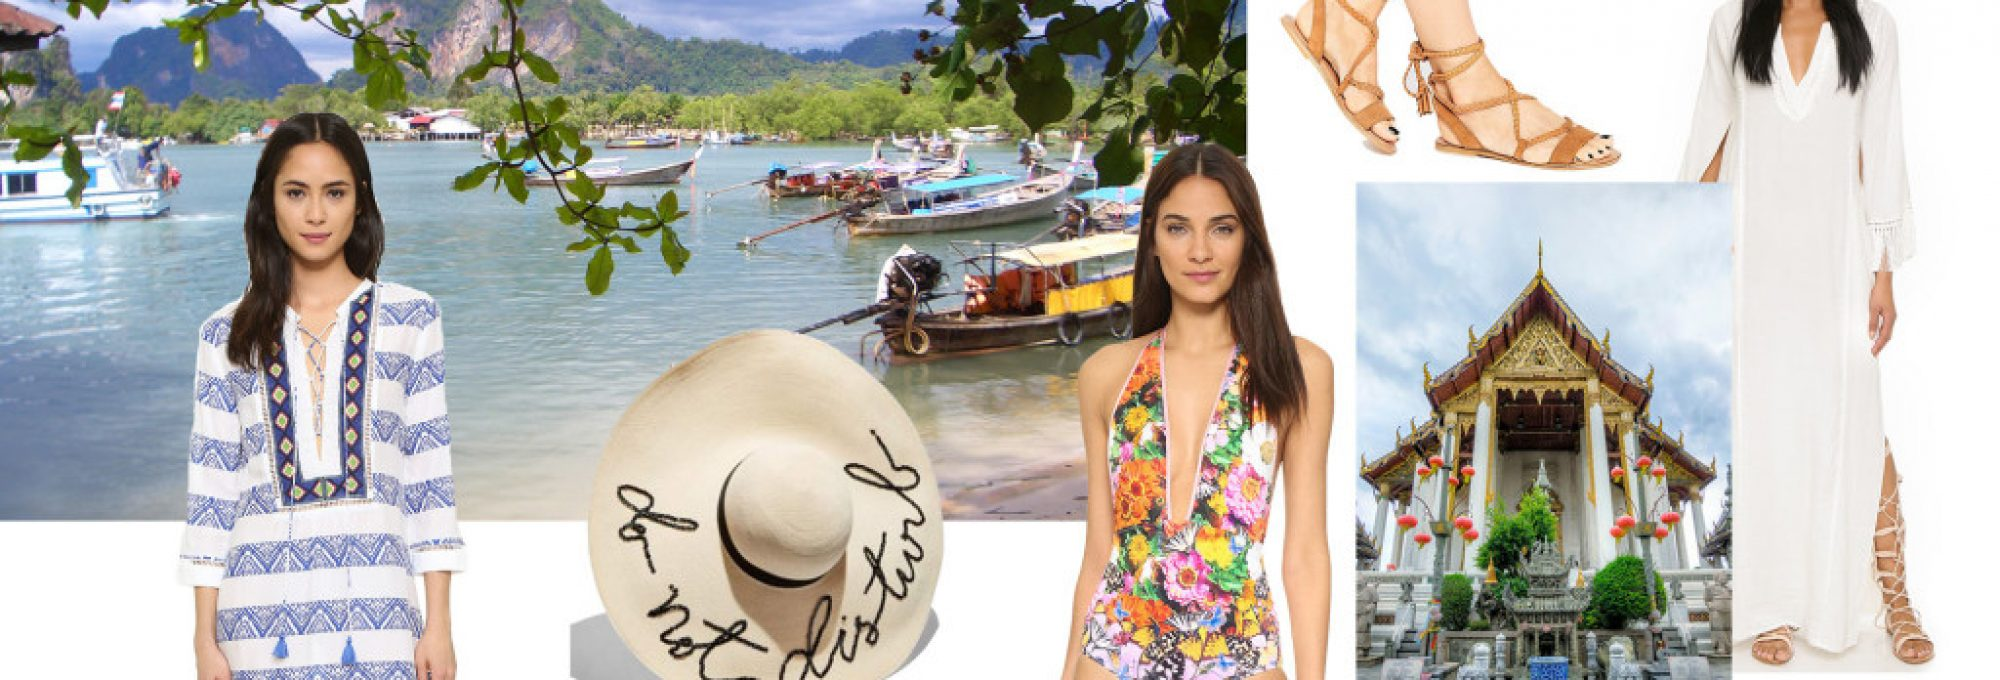 Shopping for Thailand, what to wear in thailand, travel shopping, how to pack for thailand, packing light for thailand, travel packing tips, rules for how to dress in Thailand, what to wear to a temple in thailand